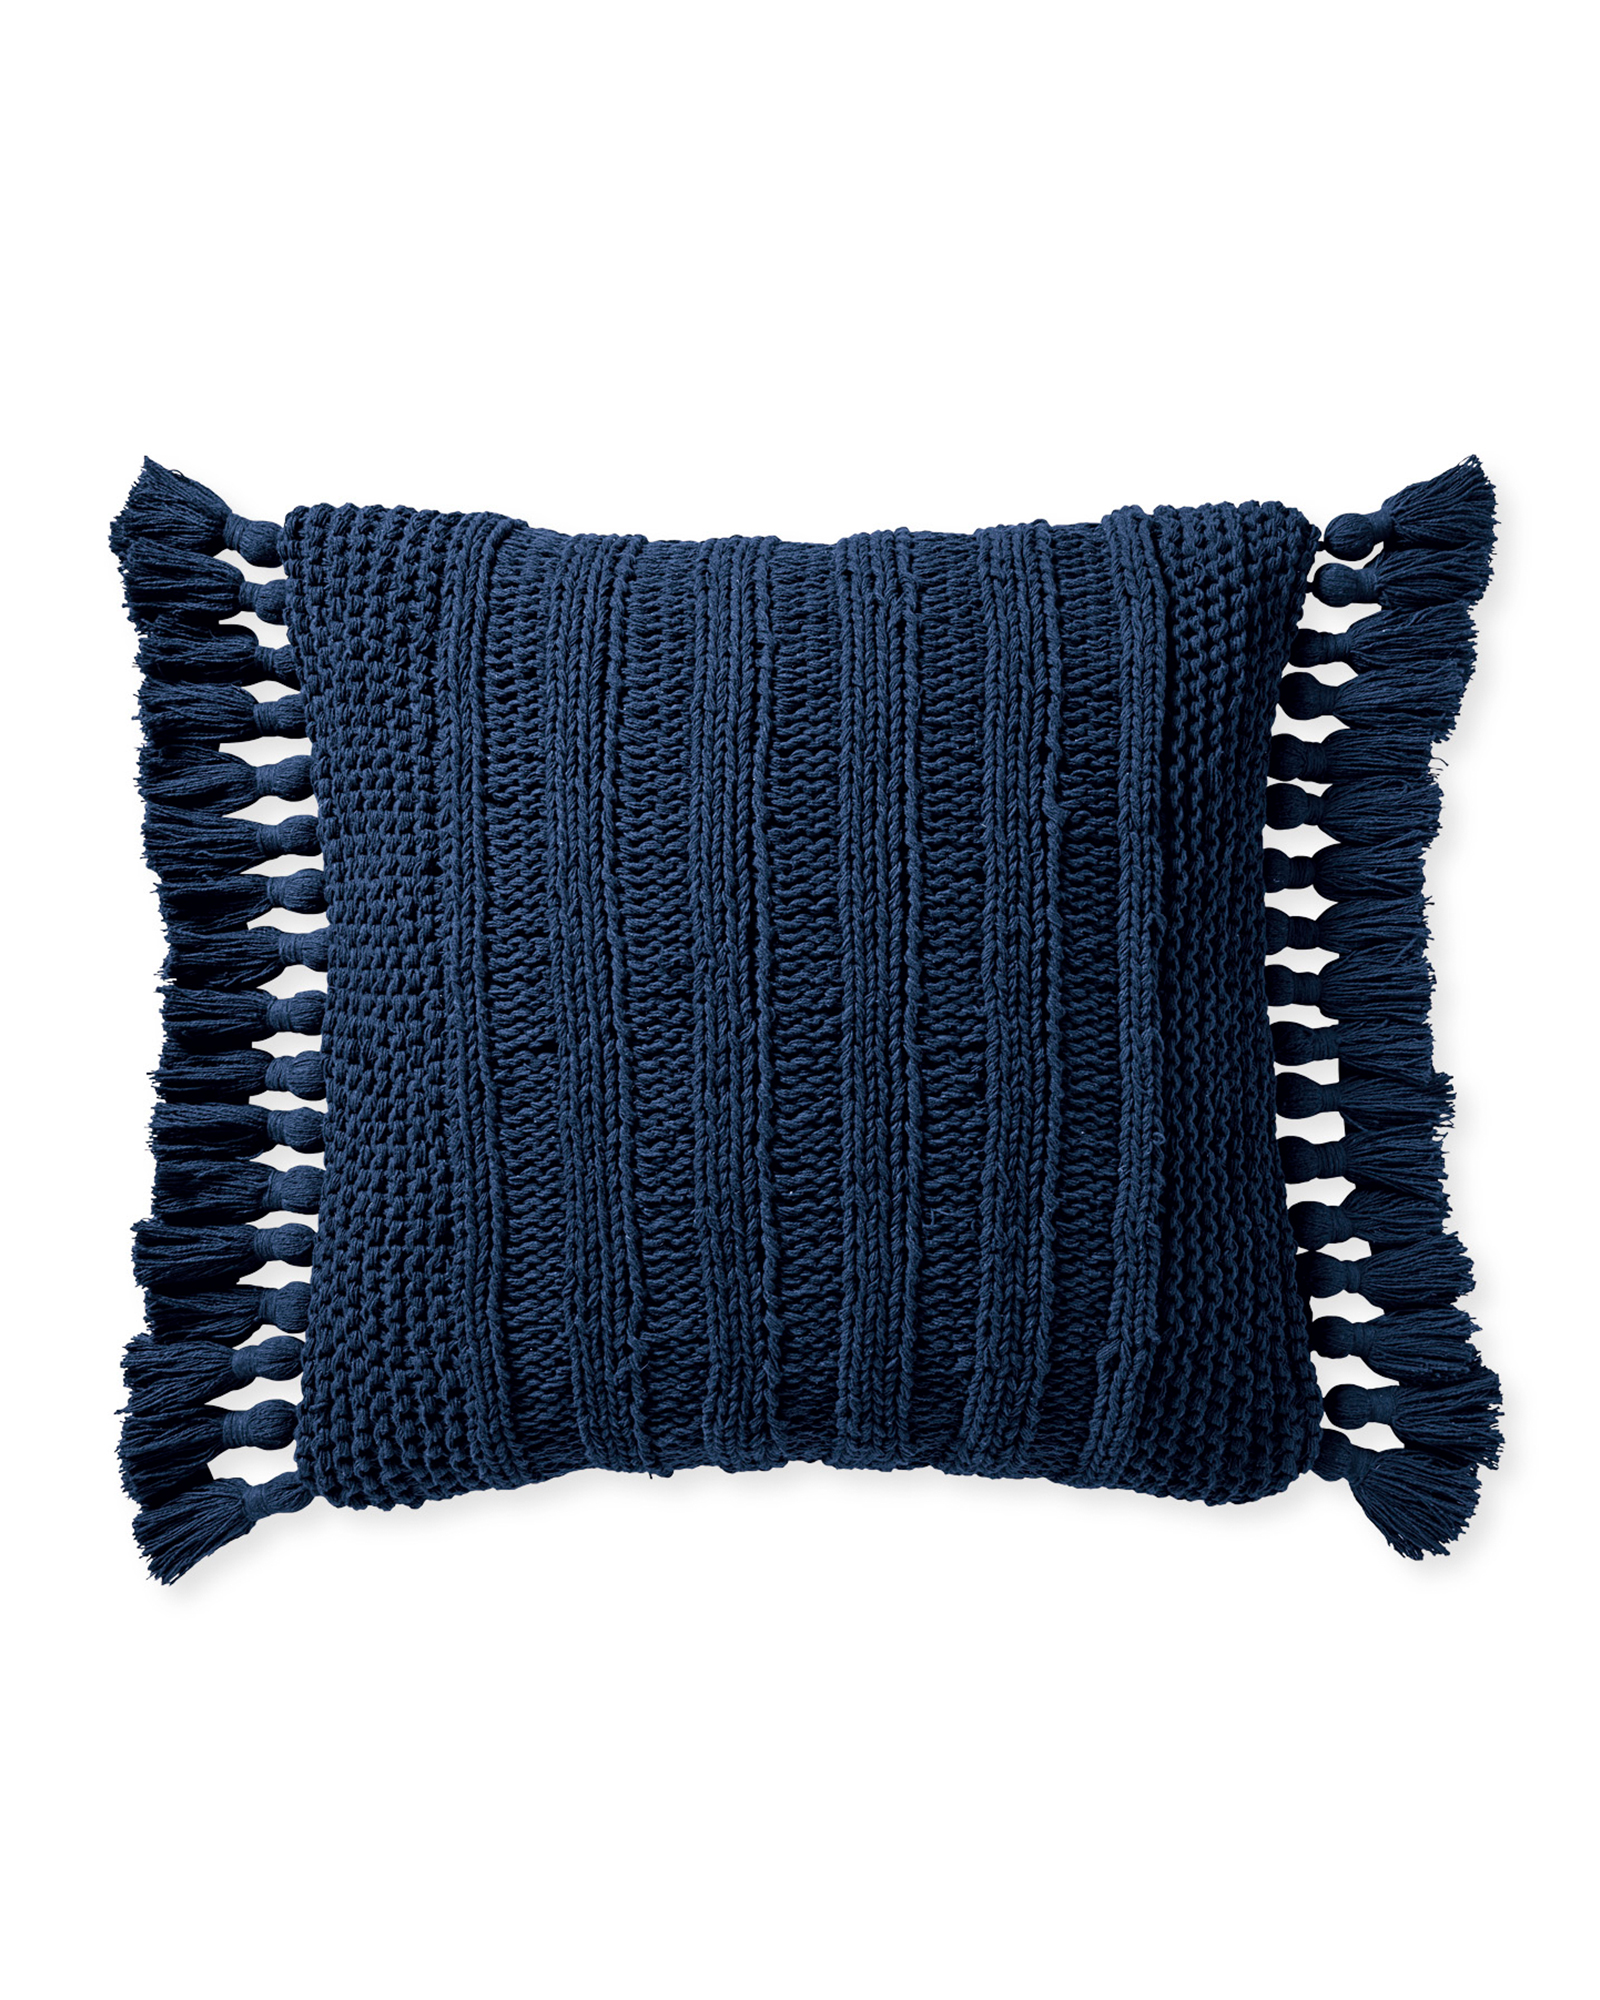 Sequoia Pillow Cover, Navy